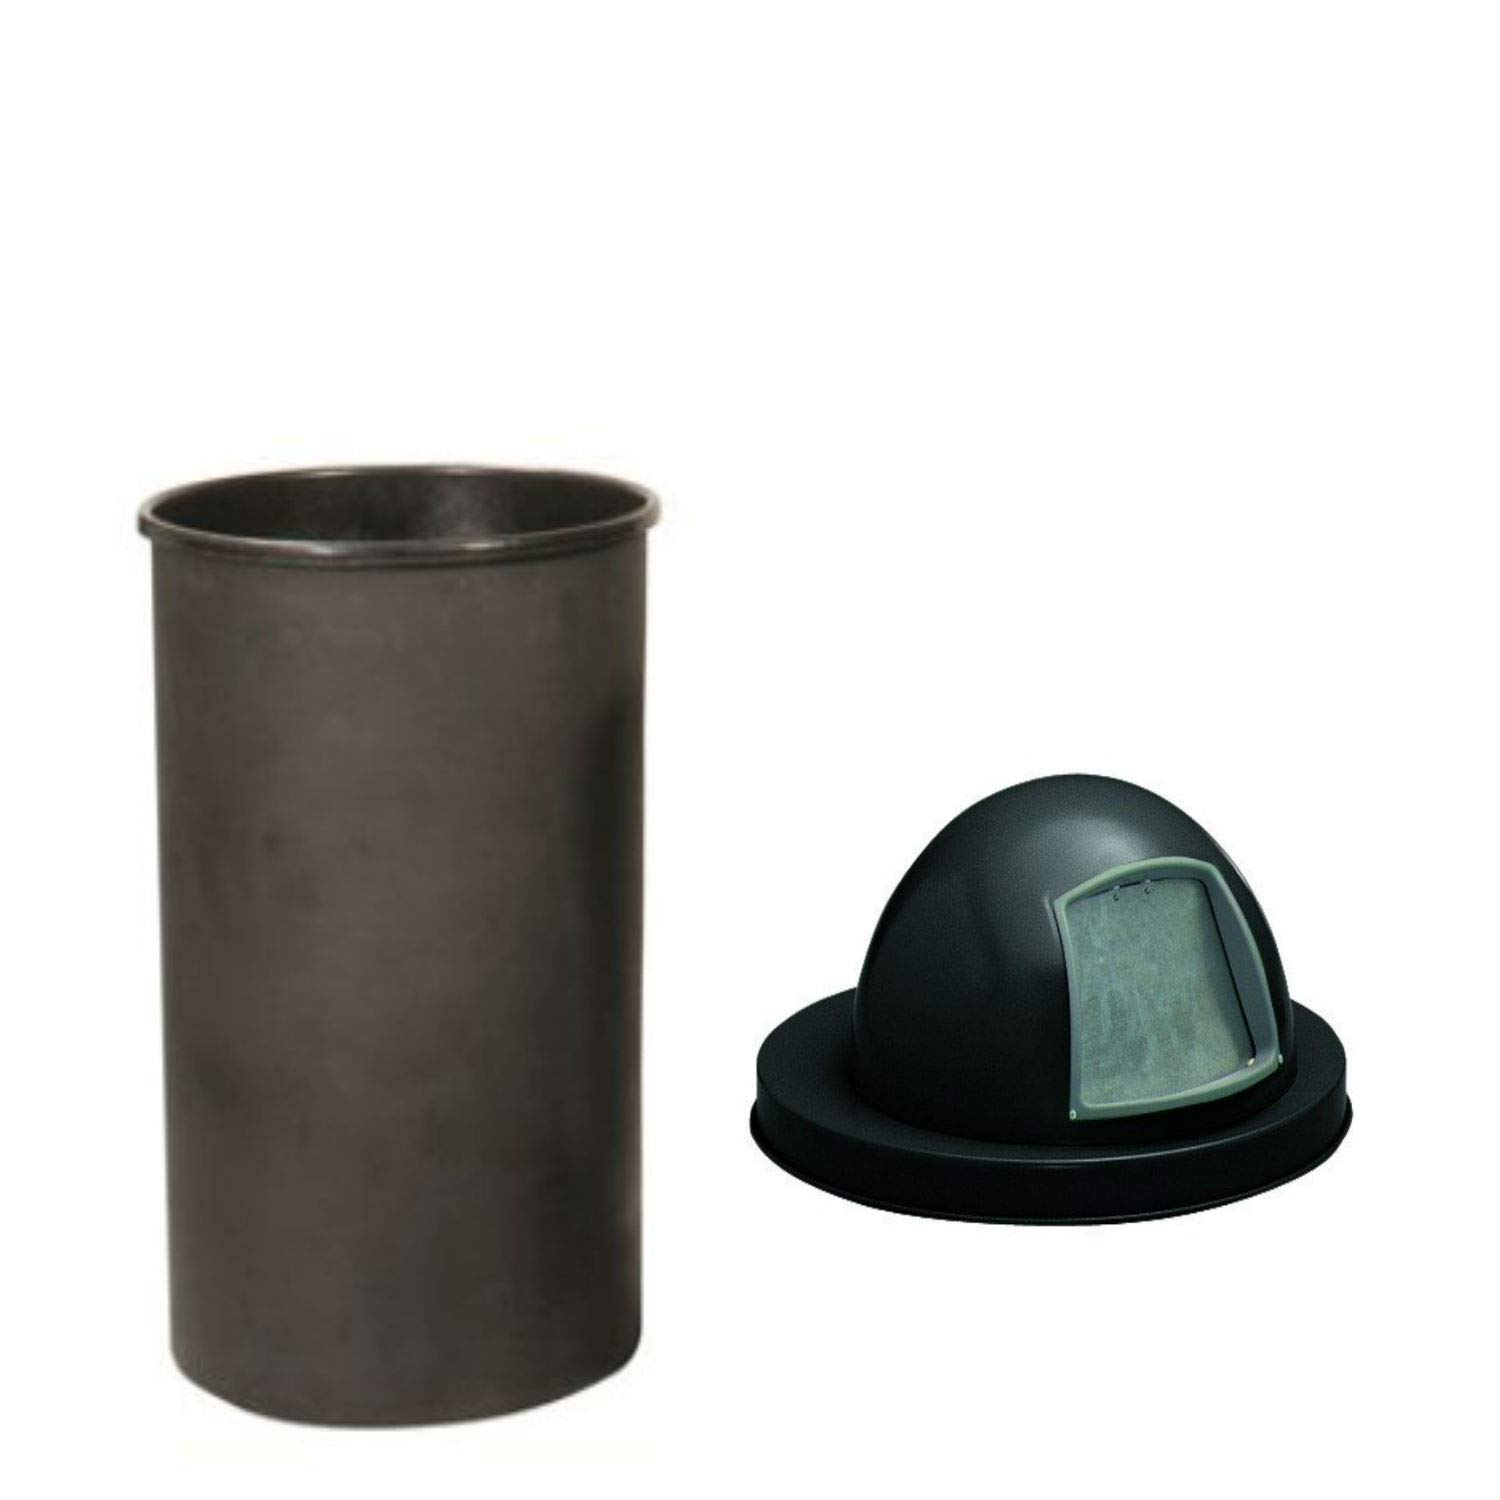 Witt Industries 55'' Gallon Liner with Expanded Metal Series Heavy Duty Dome Top Cover Finish: Powder Coat Black